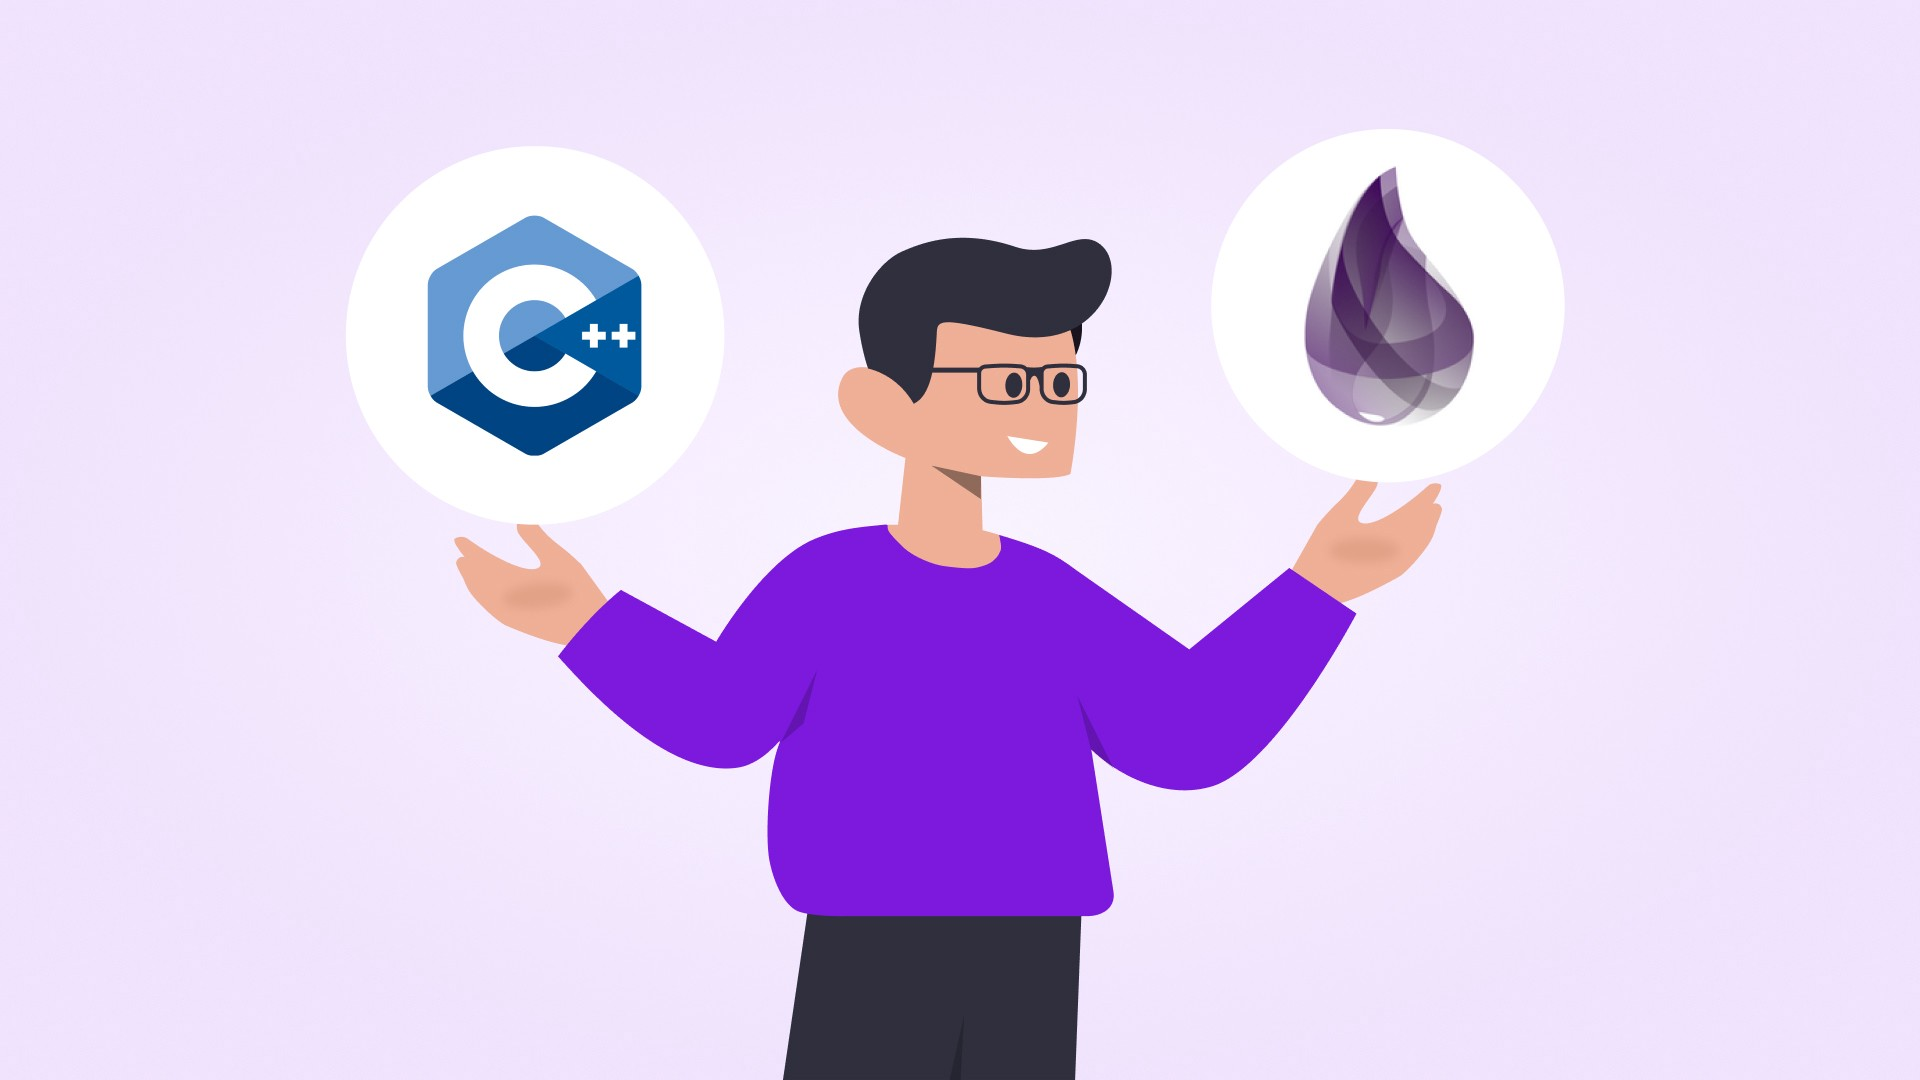 Person holding logos of C++ and Elixir